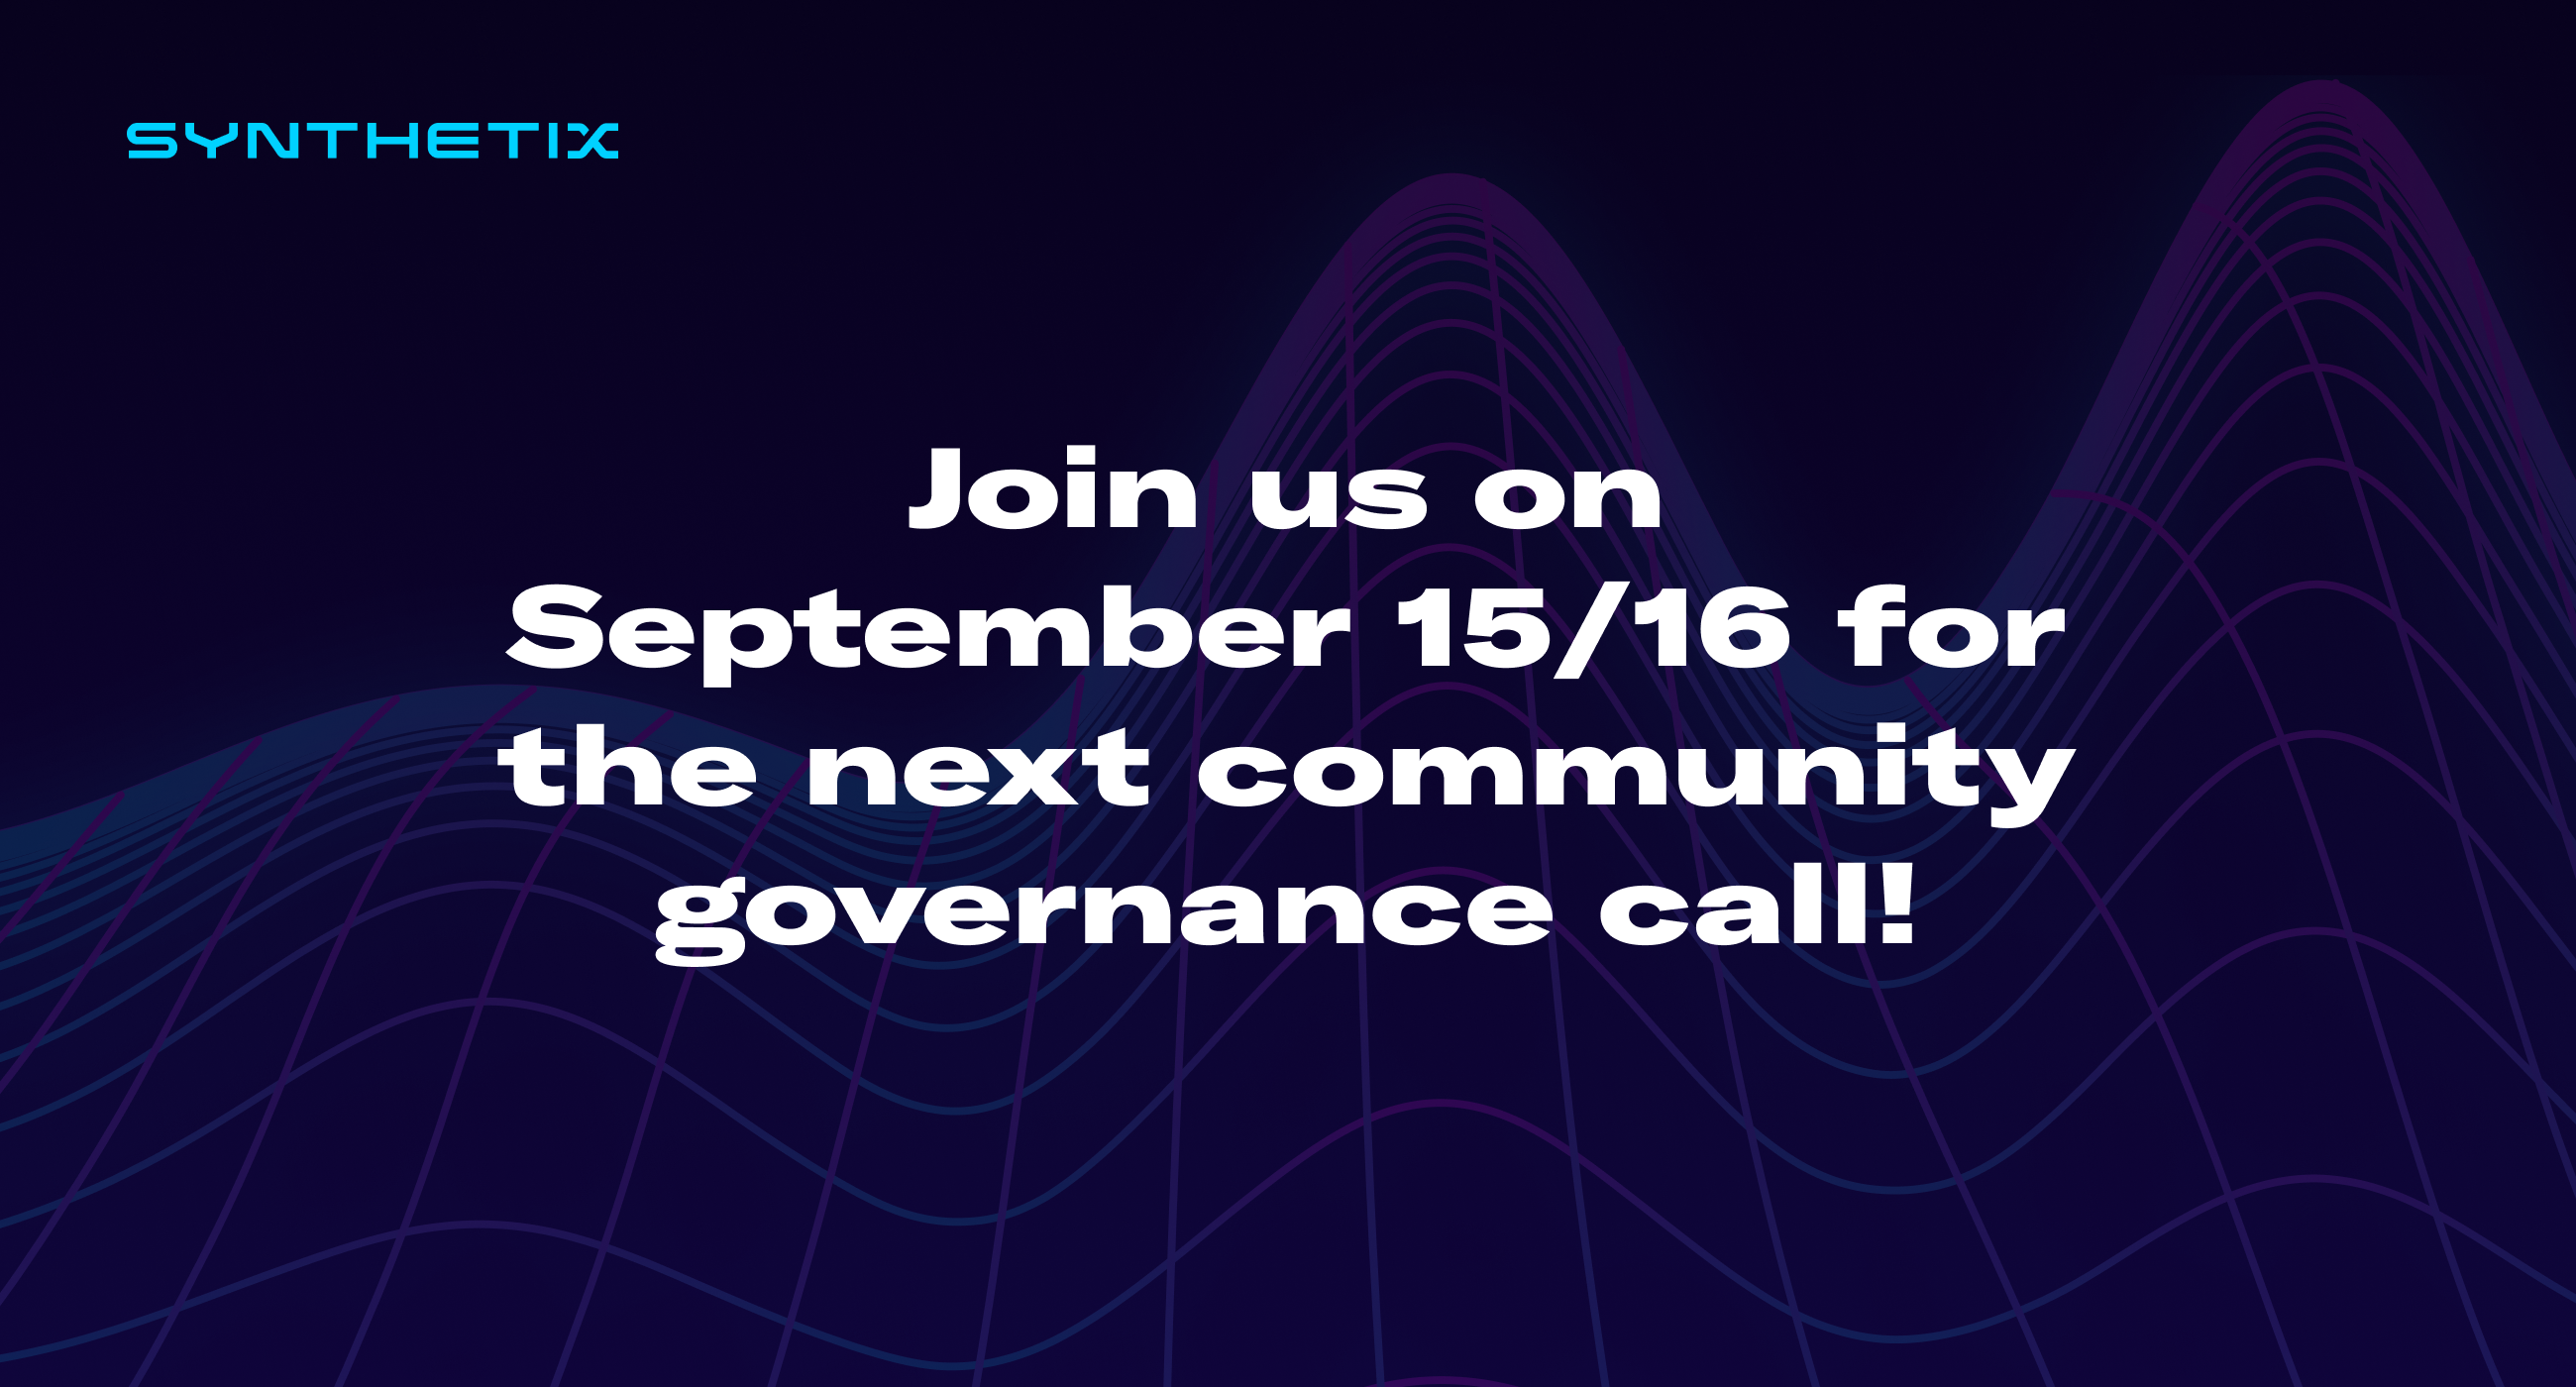 Come join us on September 15/16 for the next Synthetix community governance call!